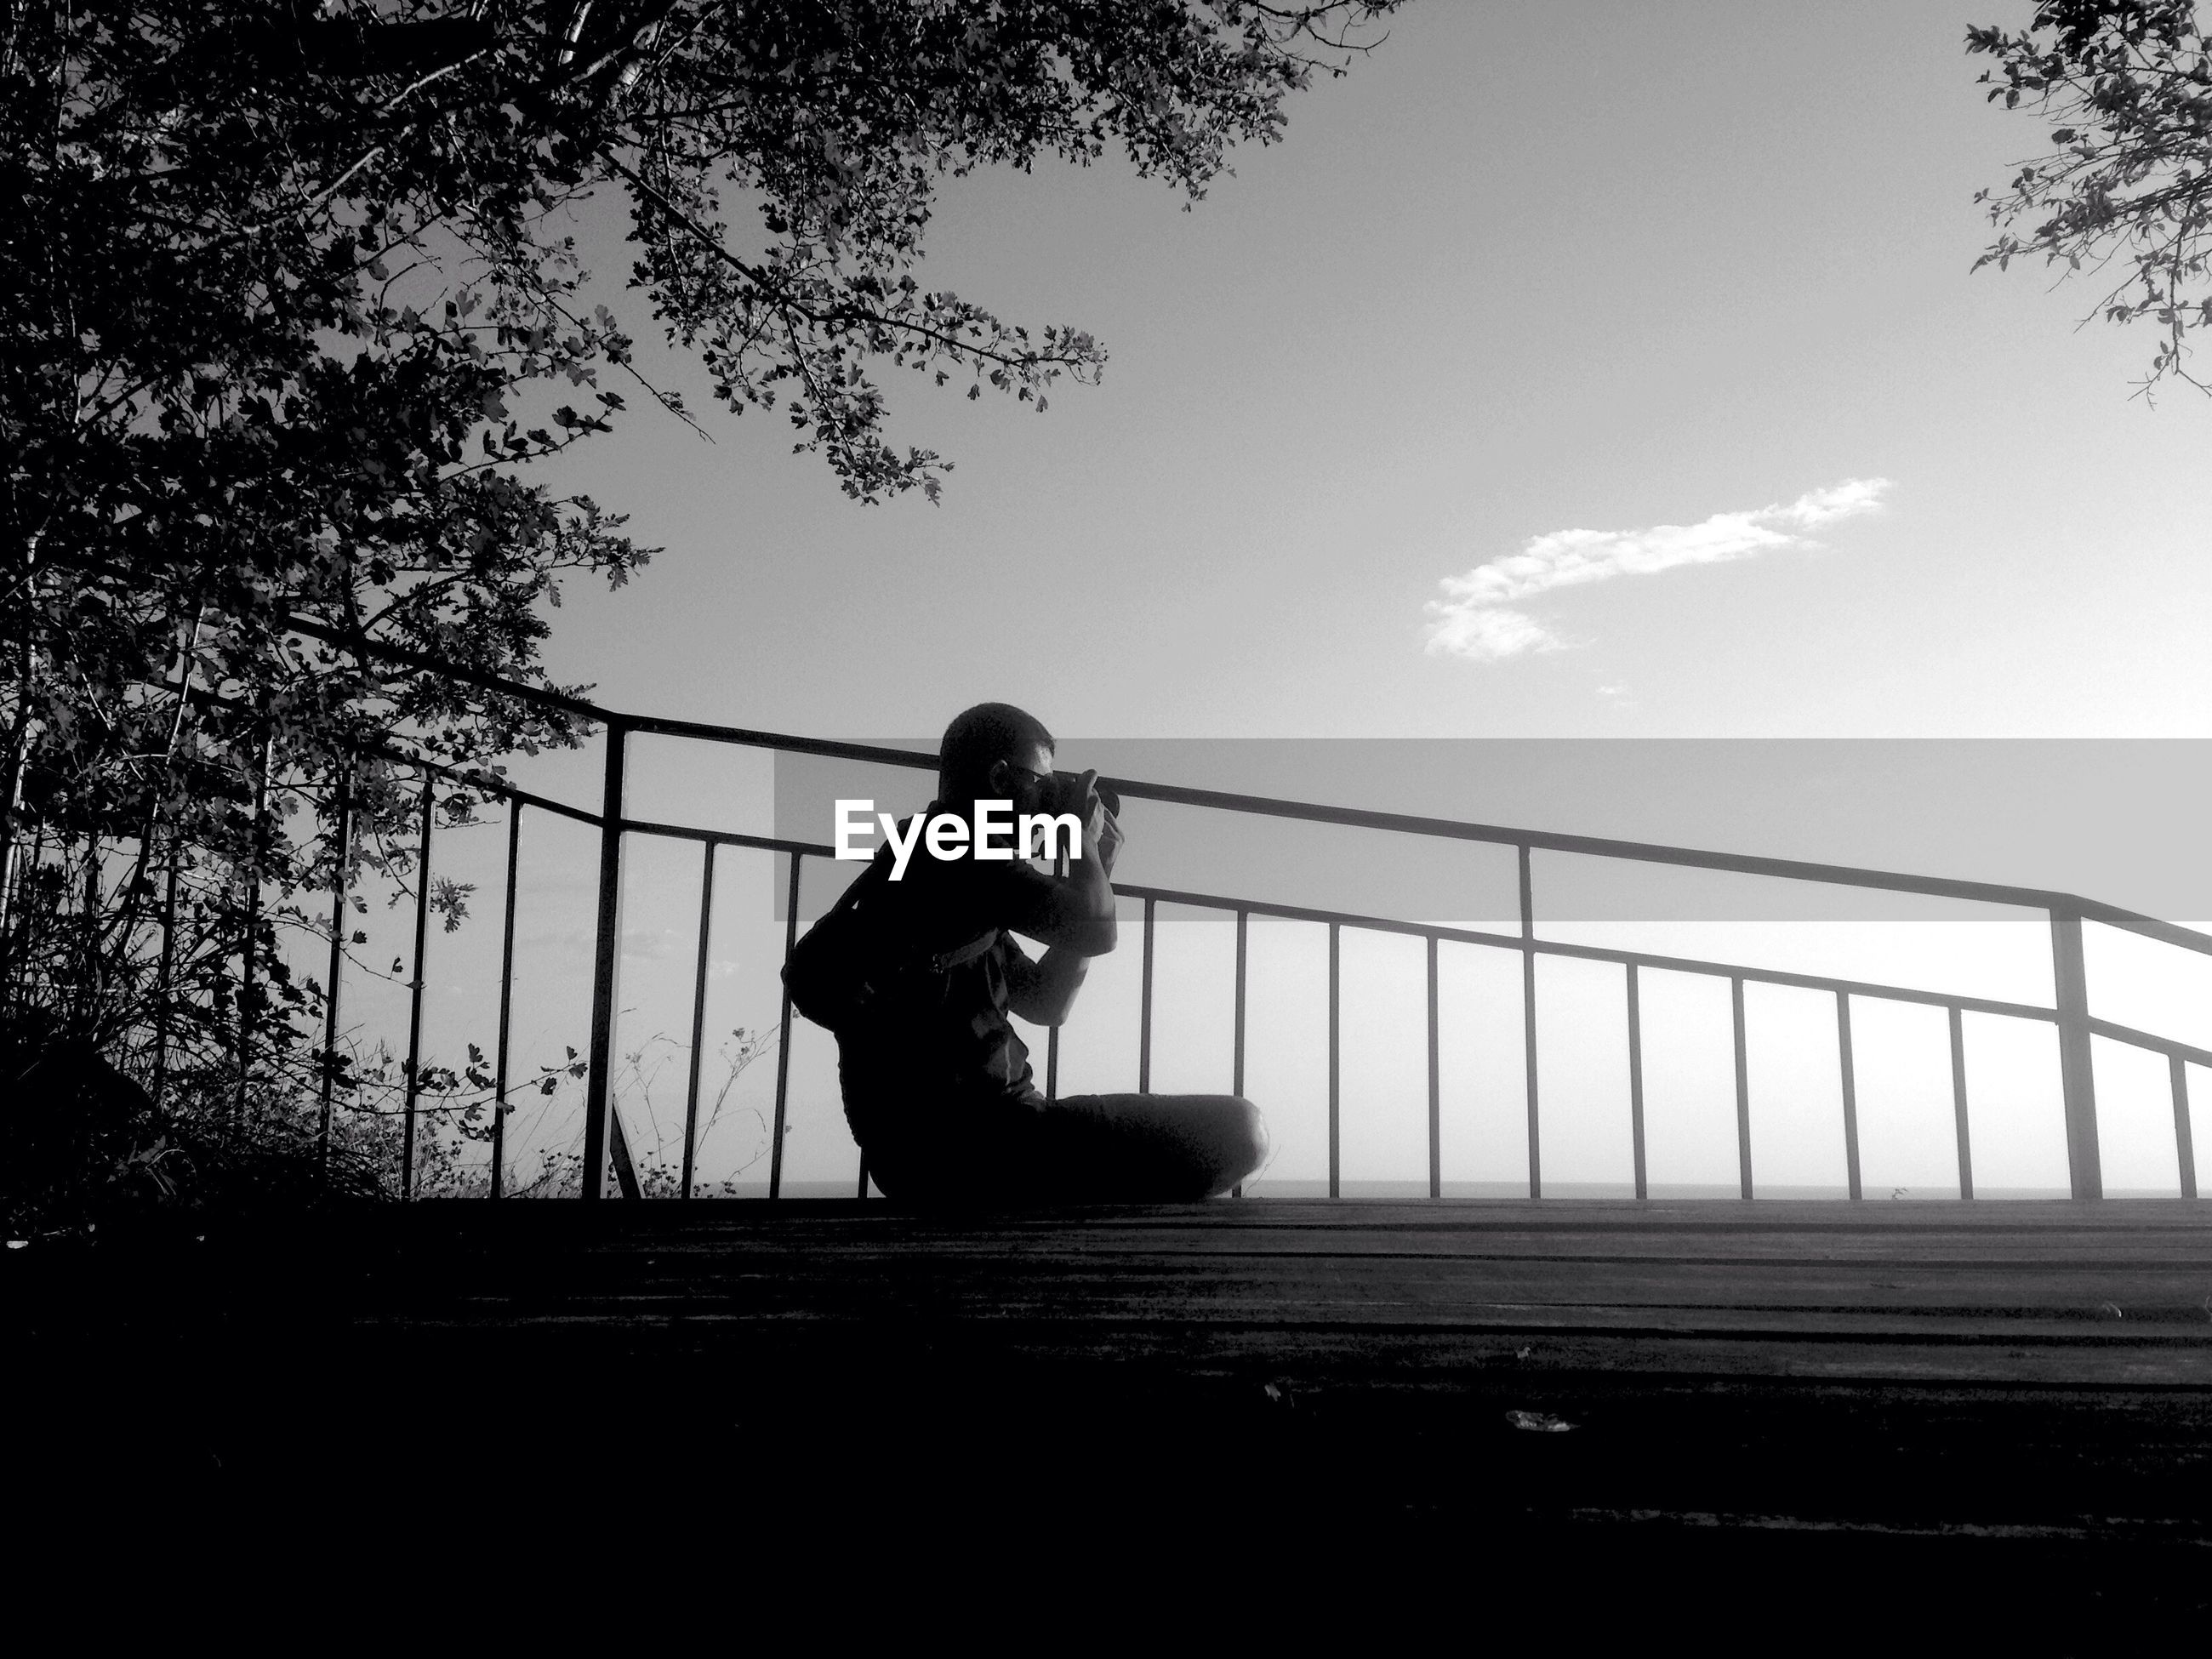 Man photographing while sitting on steps against sky